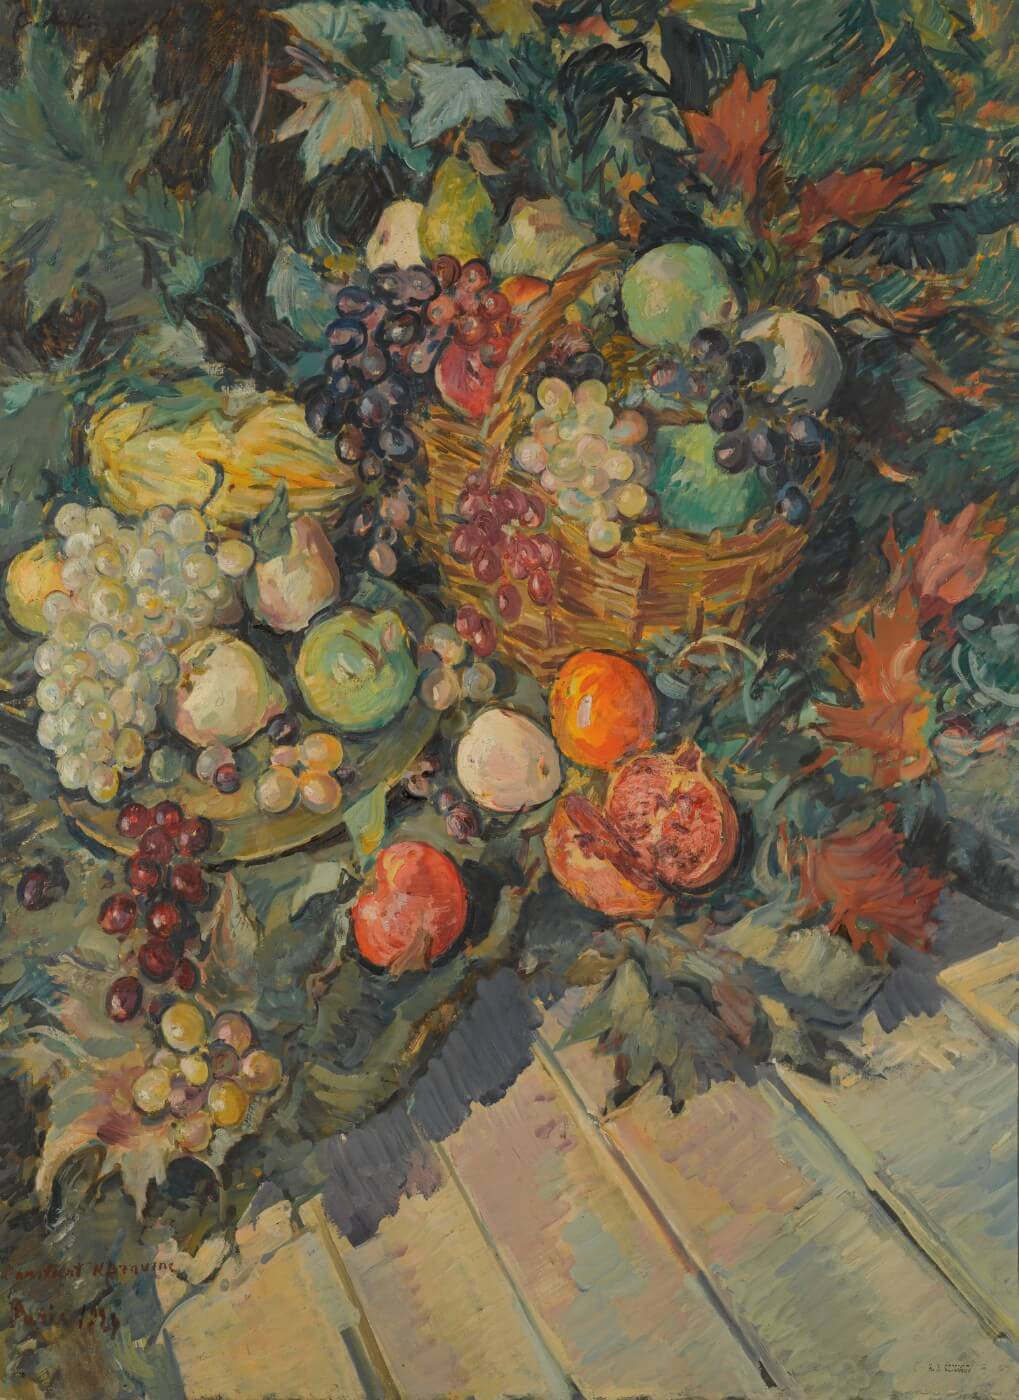 Still Life With Fruit - Life Size Posters